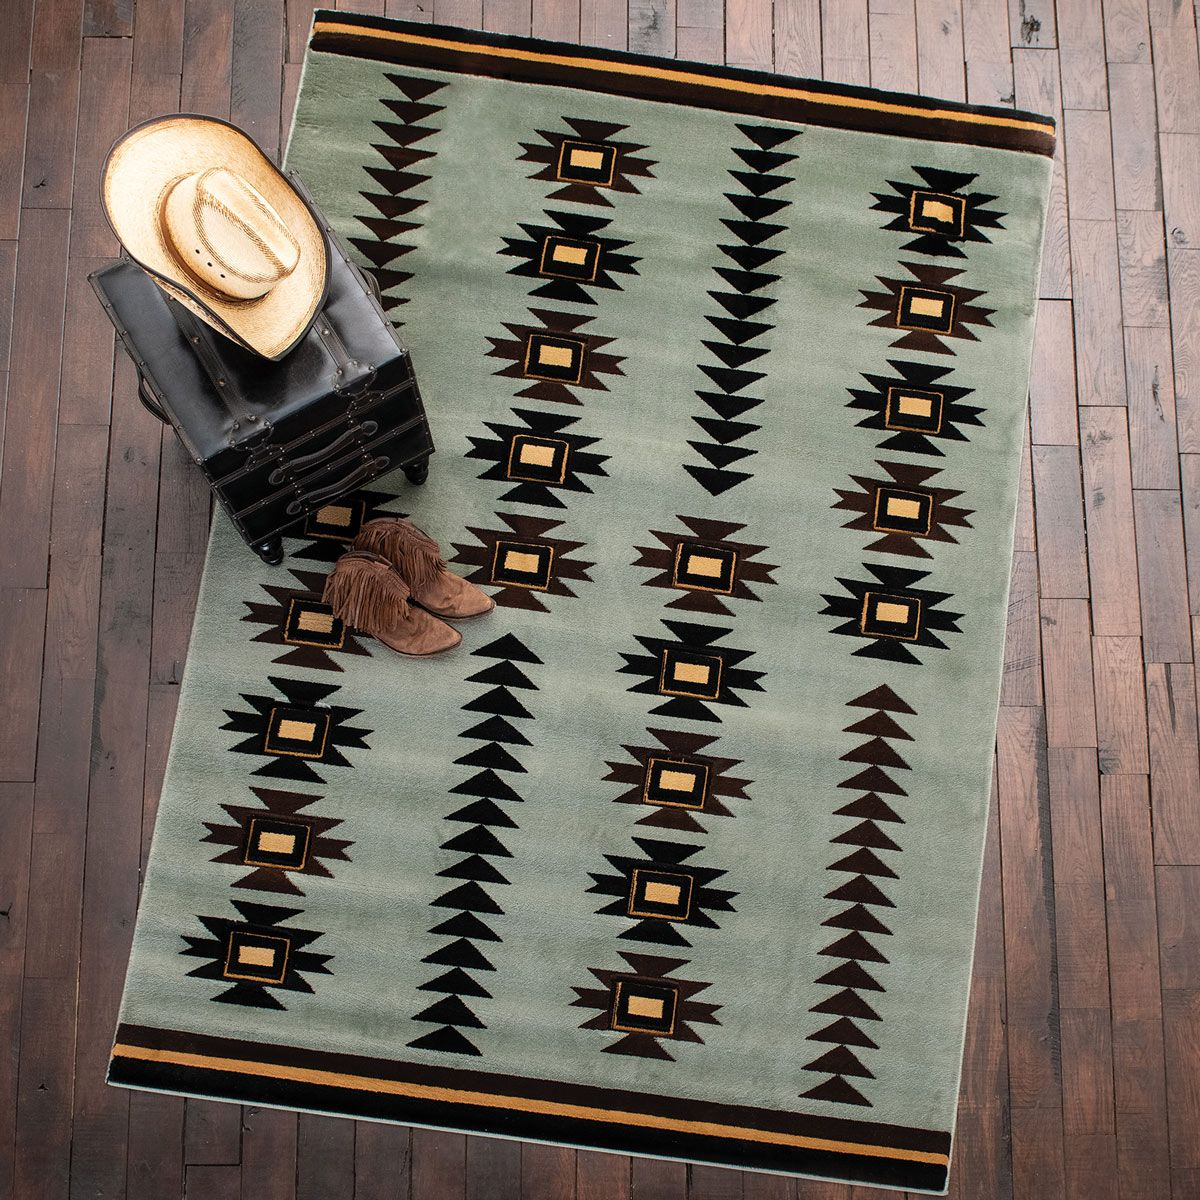 Arrowhead Creek Rug - 5 x 8